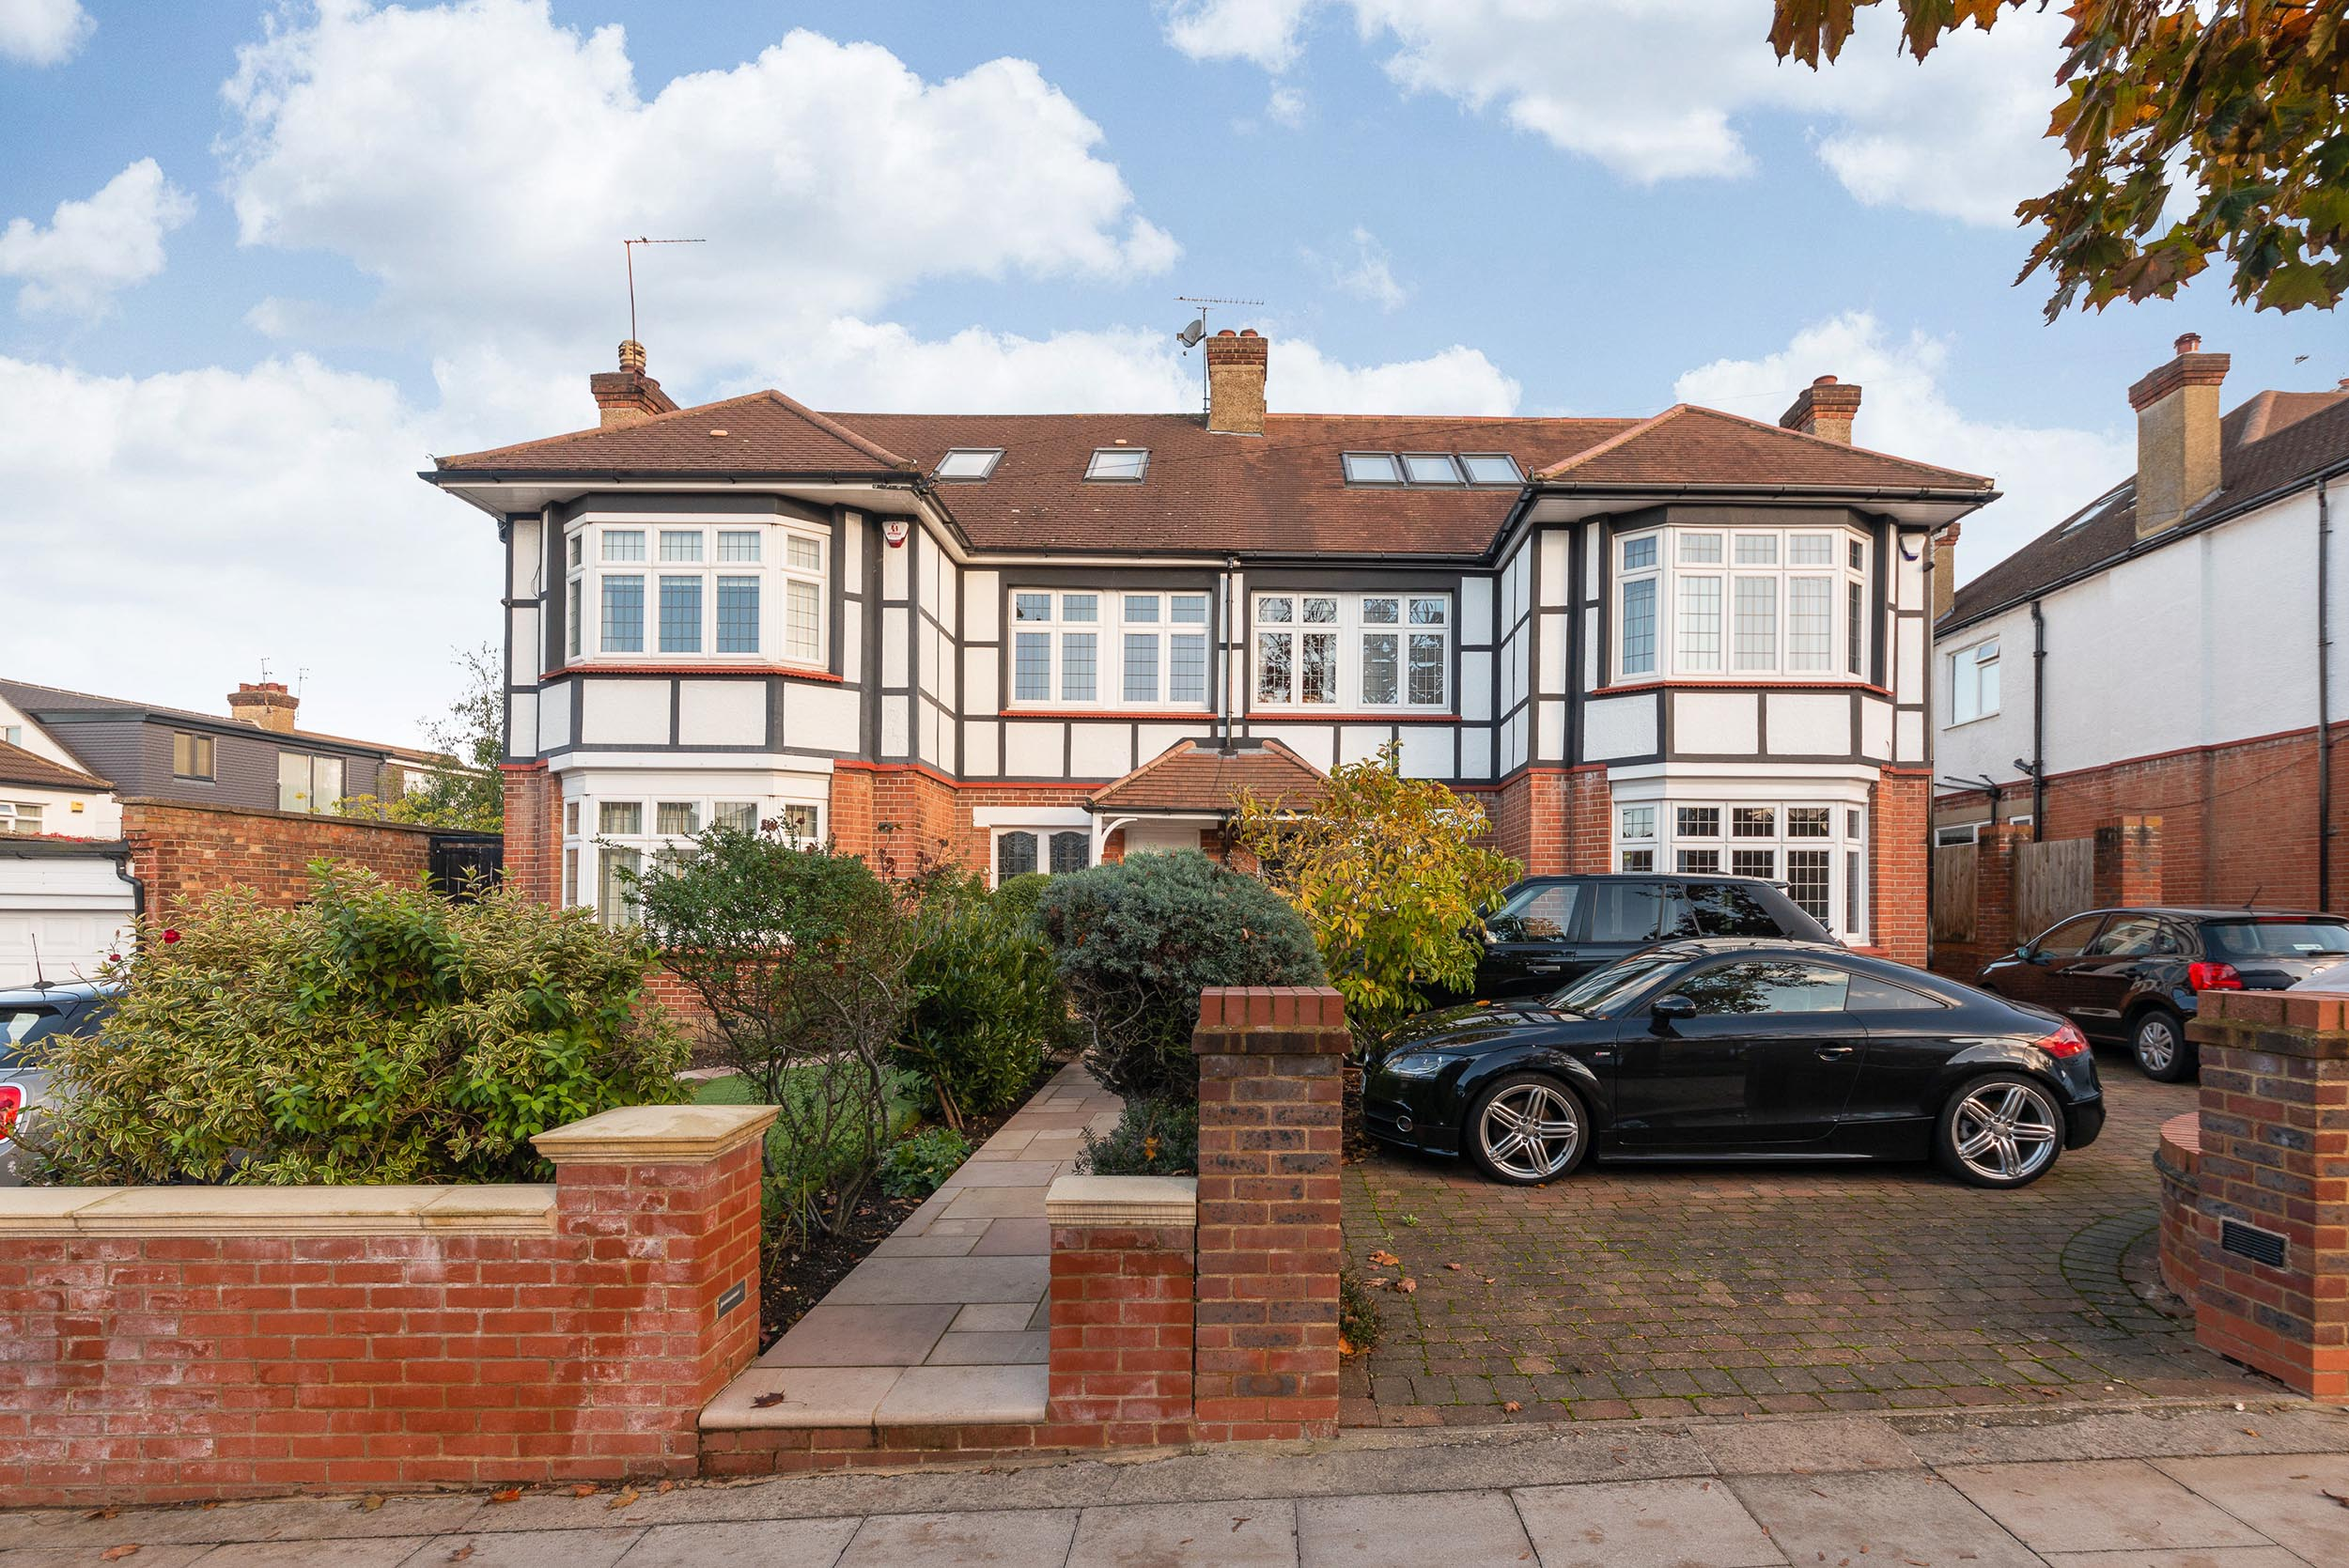 61-and-63-Wades-Hill-N21-1BD-Small-Res-20